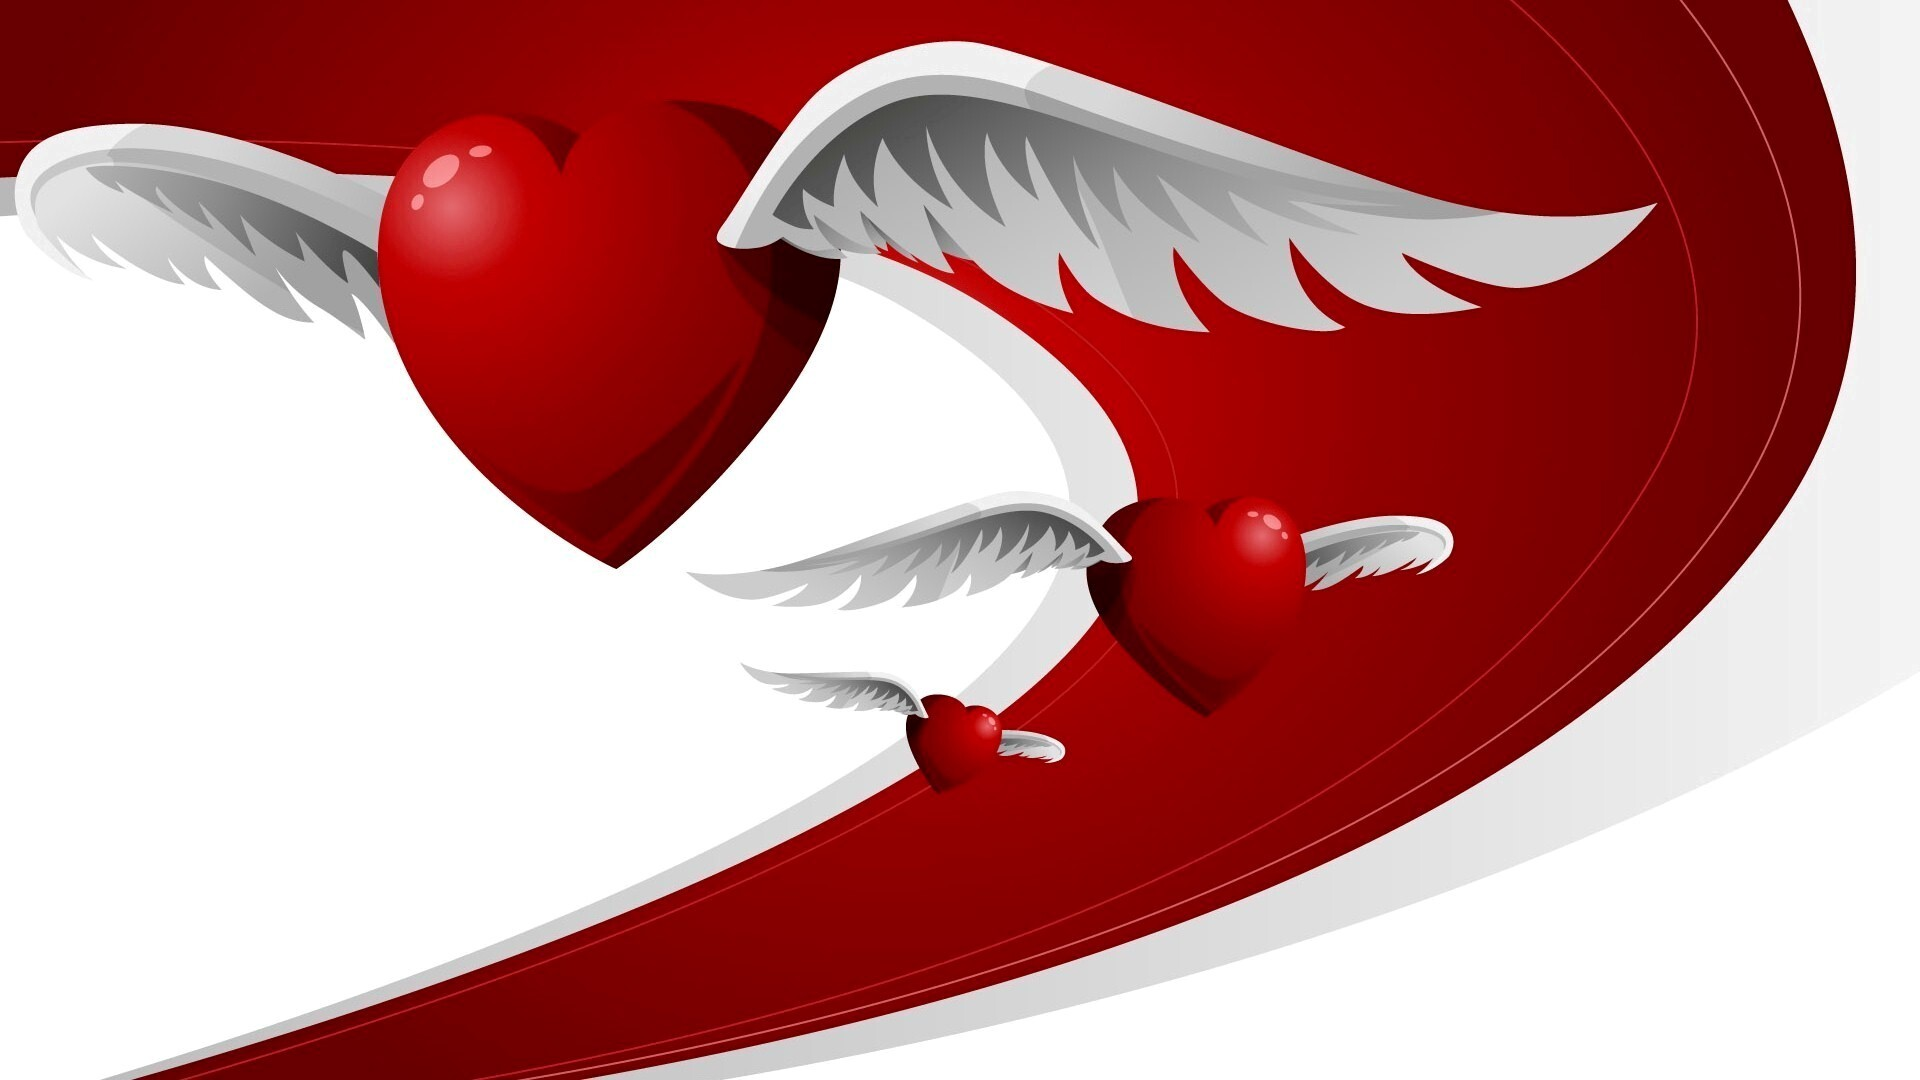 Red Heart Love Wallpaper: Red Heart With White Wings